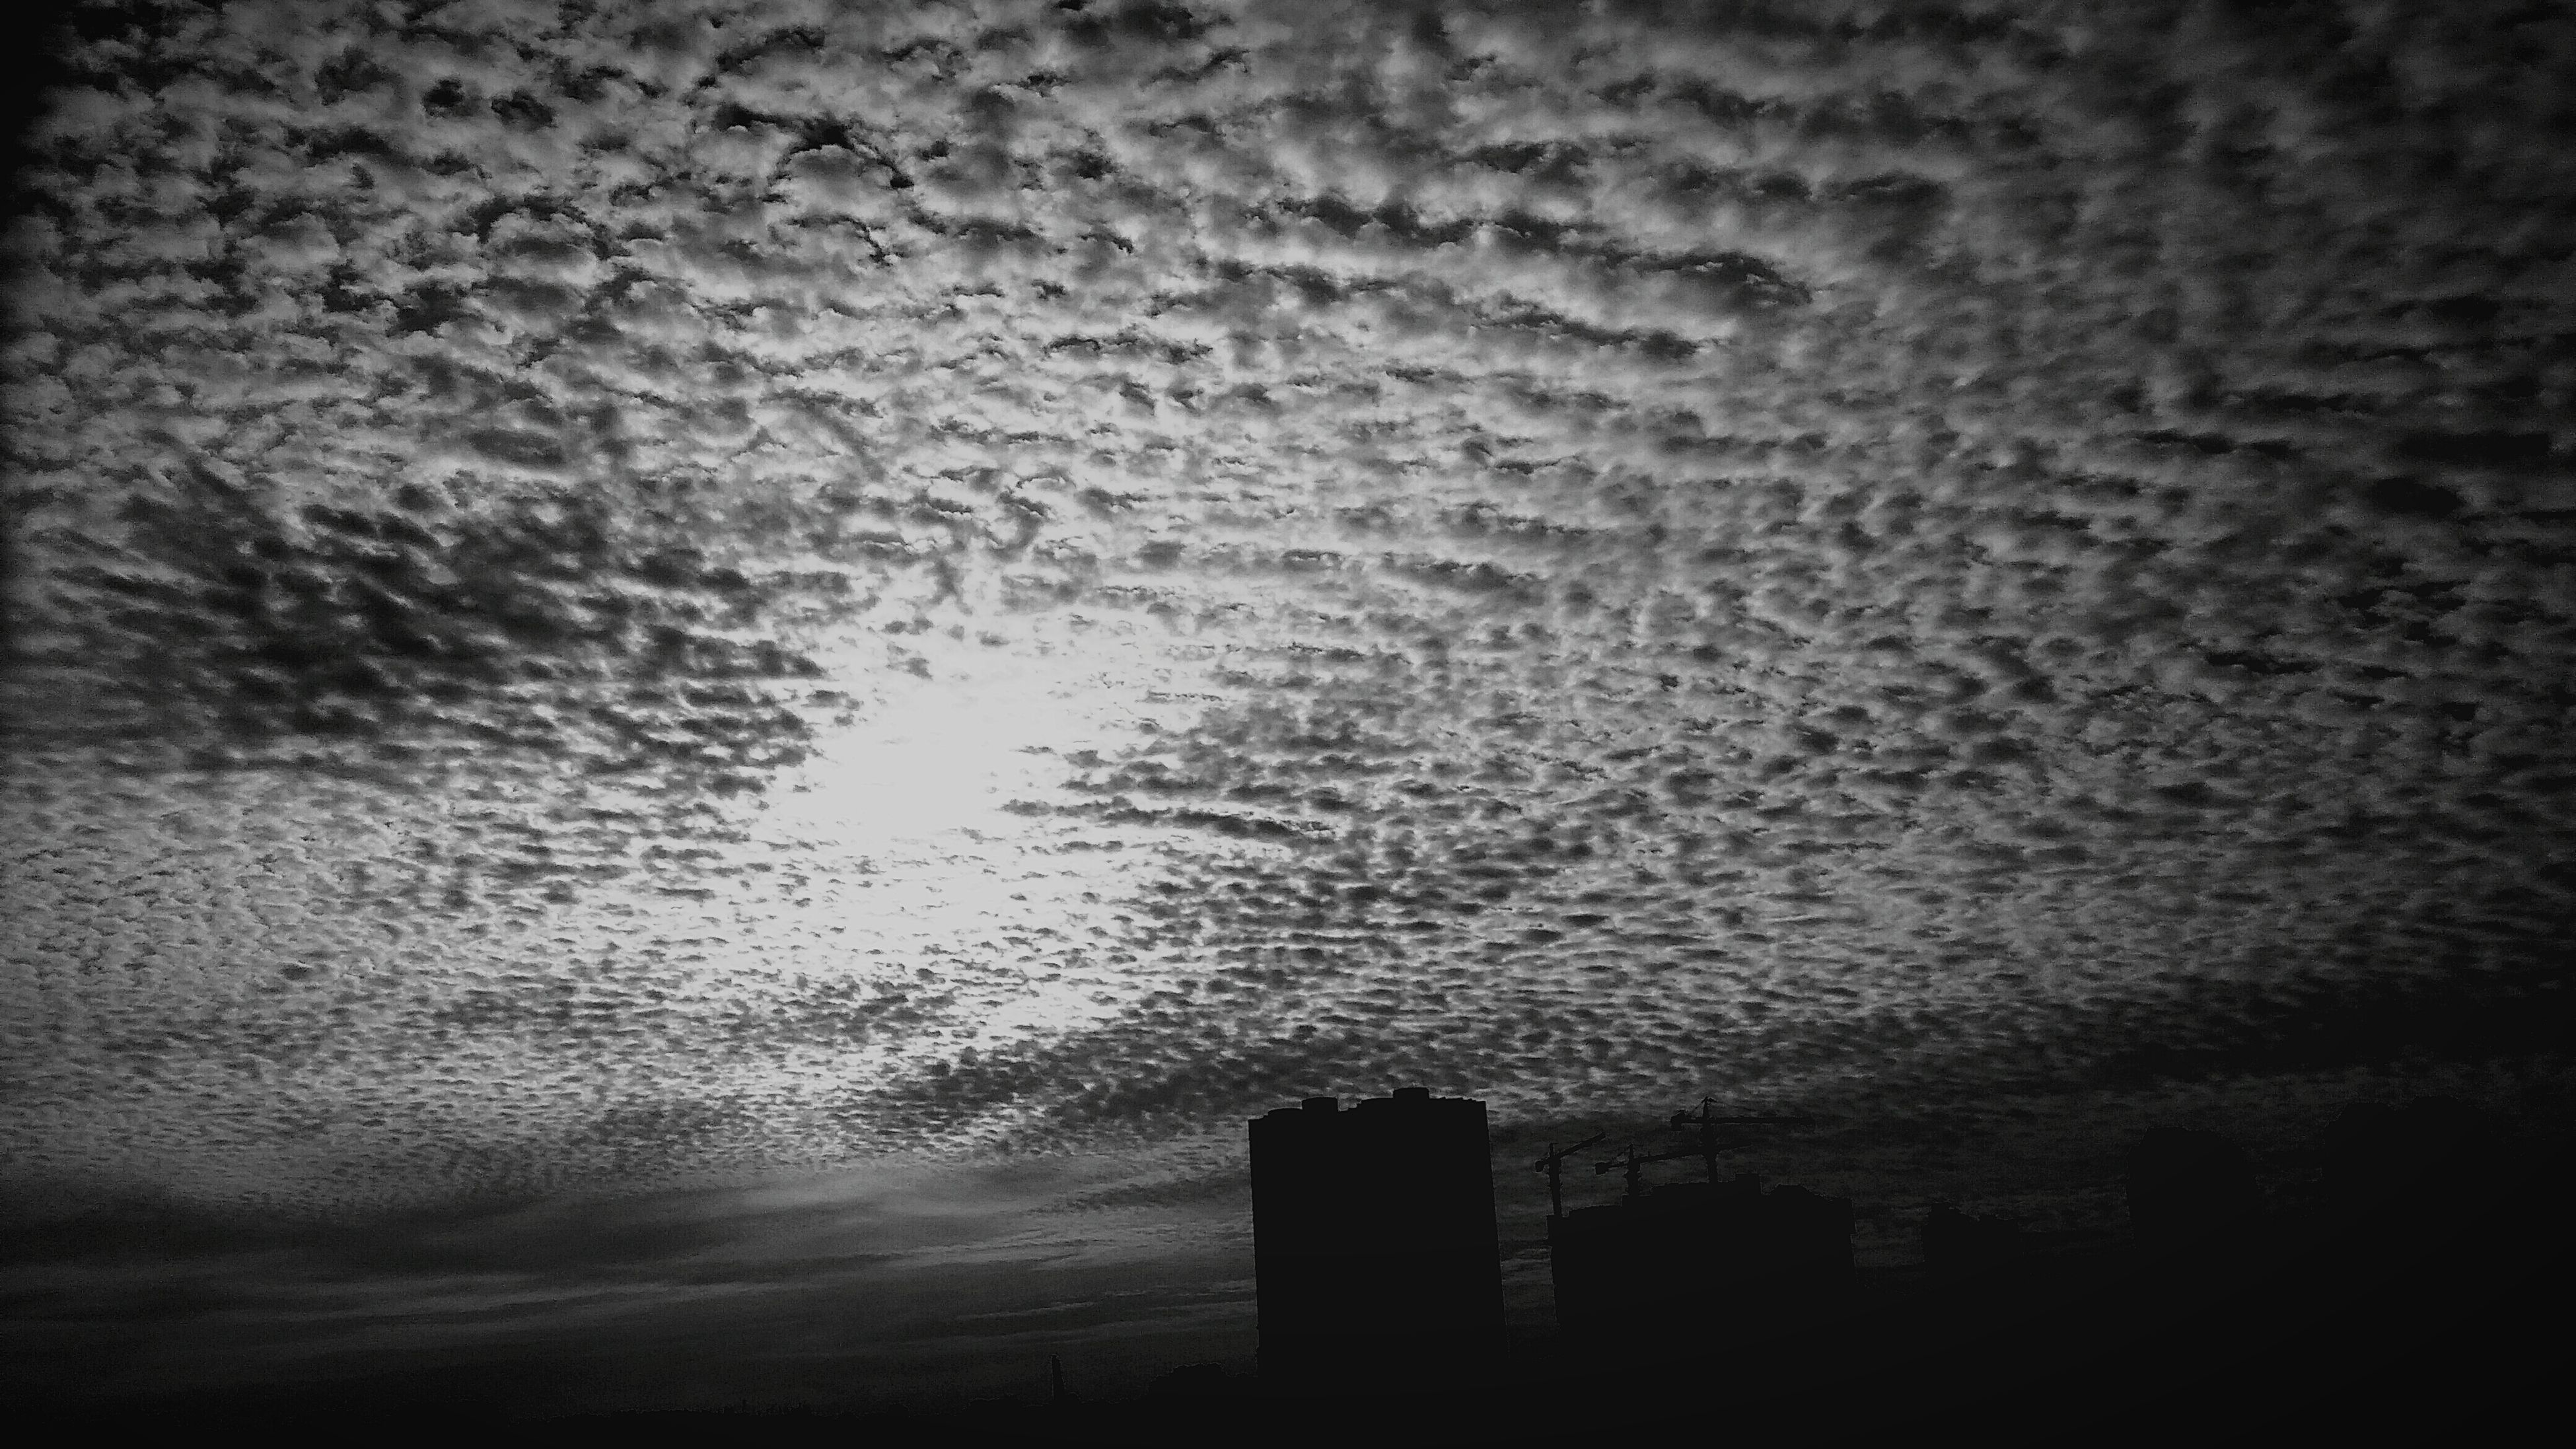 architecture, built structure, building exterior, silhouette, sky, cloud - sky, water, dusk, city, outdoors, nature, weather, no people, building, sunset, cloudy, low angle view, tranquility, overcast, scenics